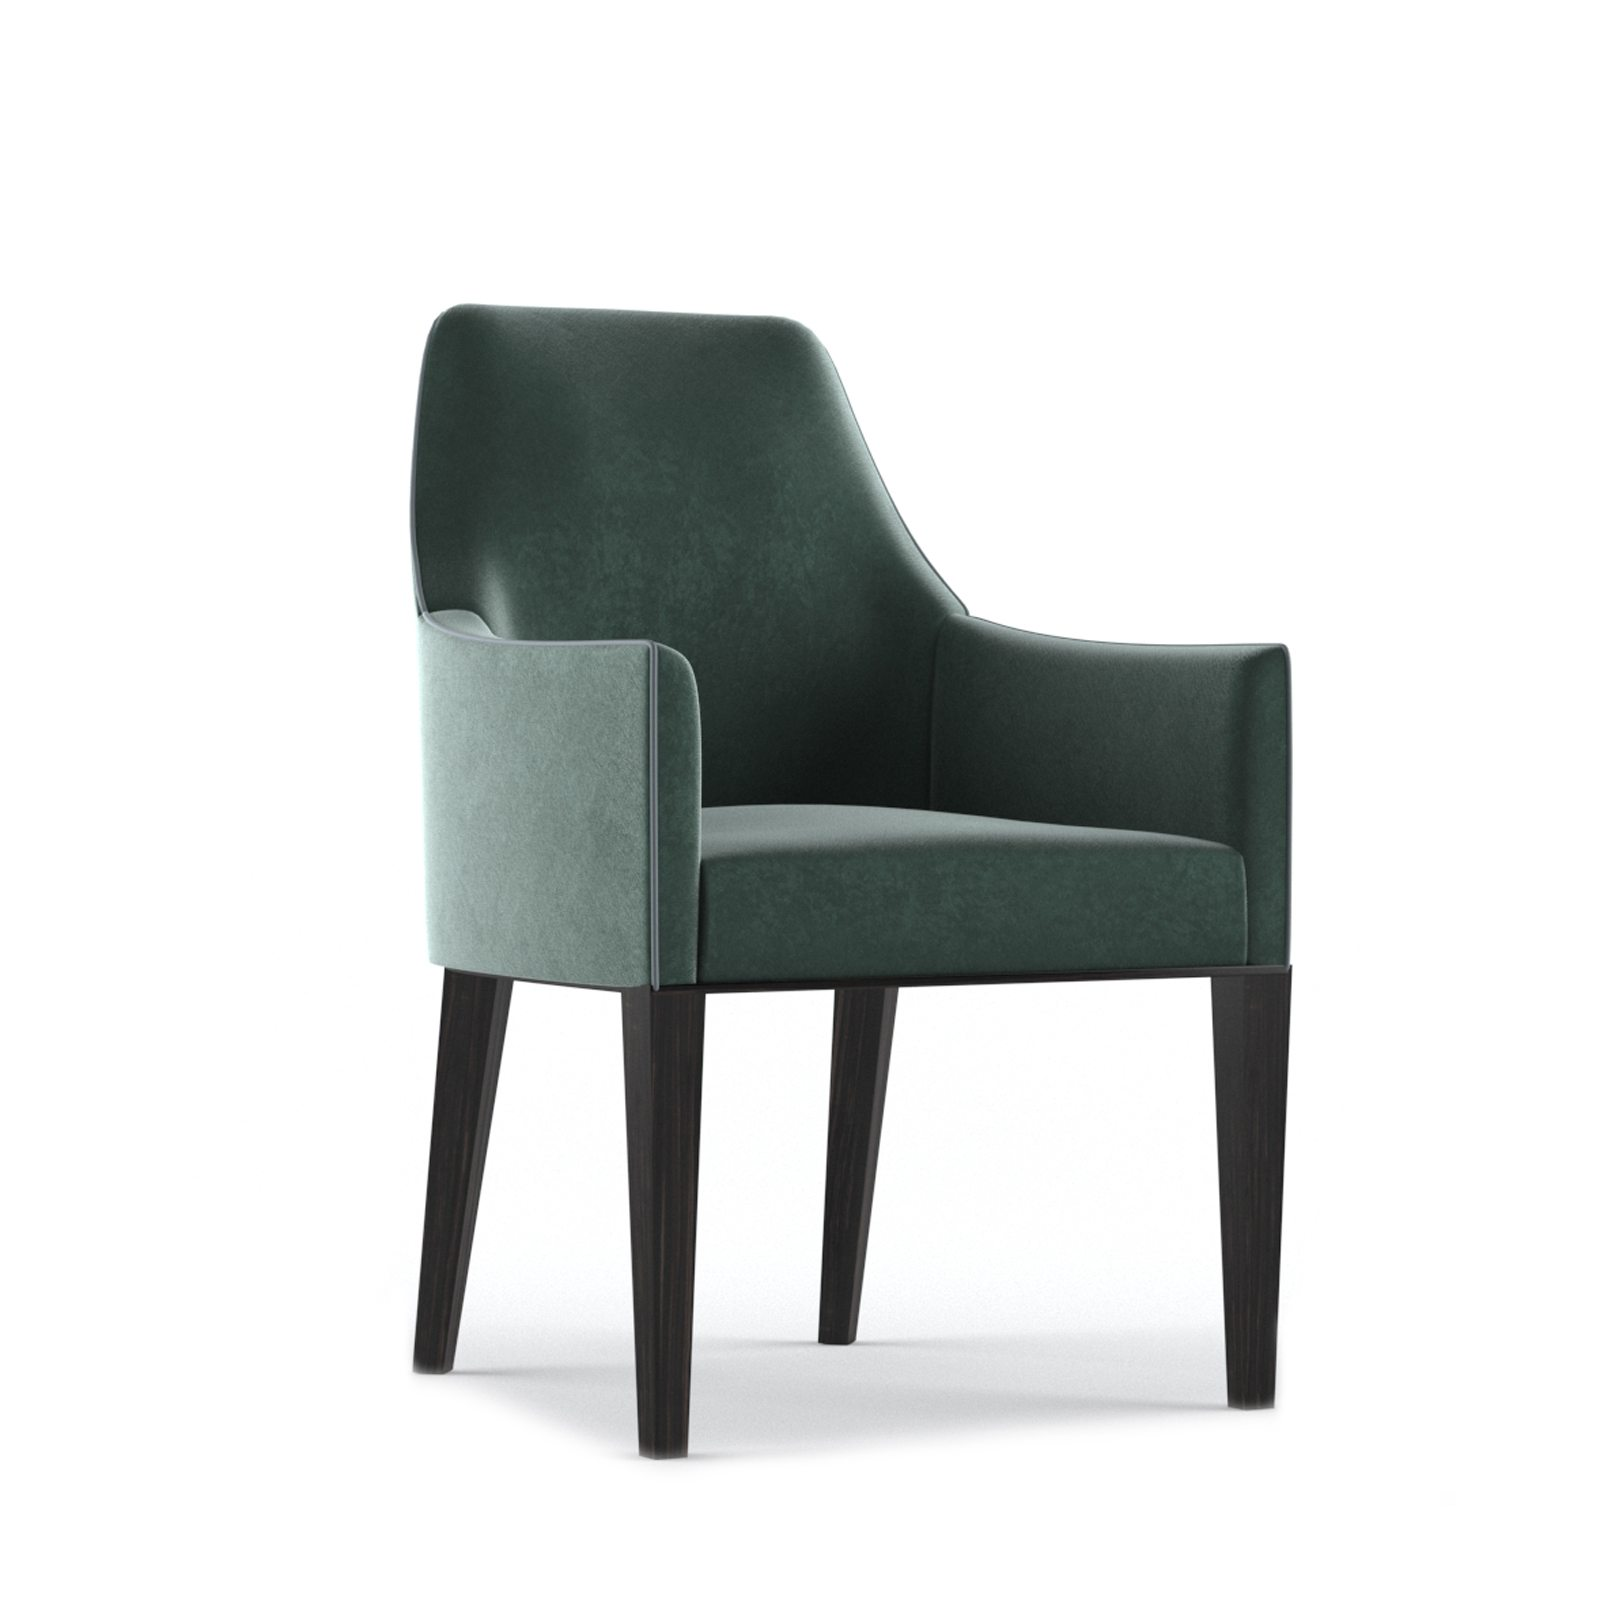 Balfour-Carver-Chair-by-Bonham-&-Bonham-12